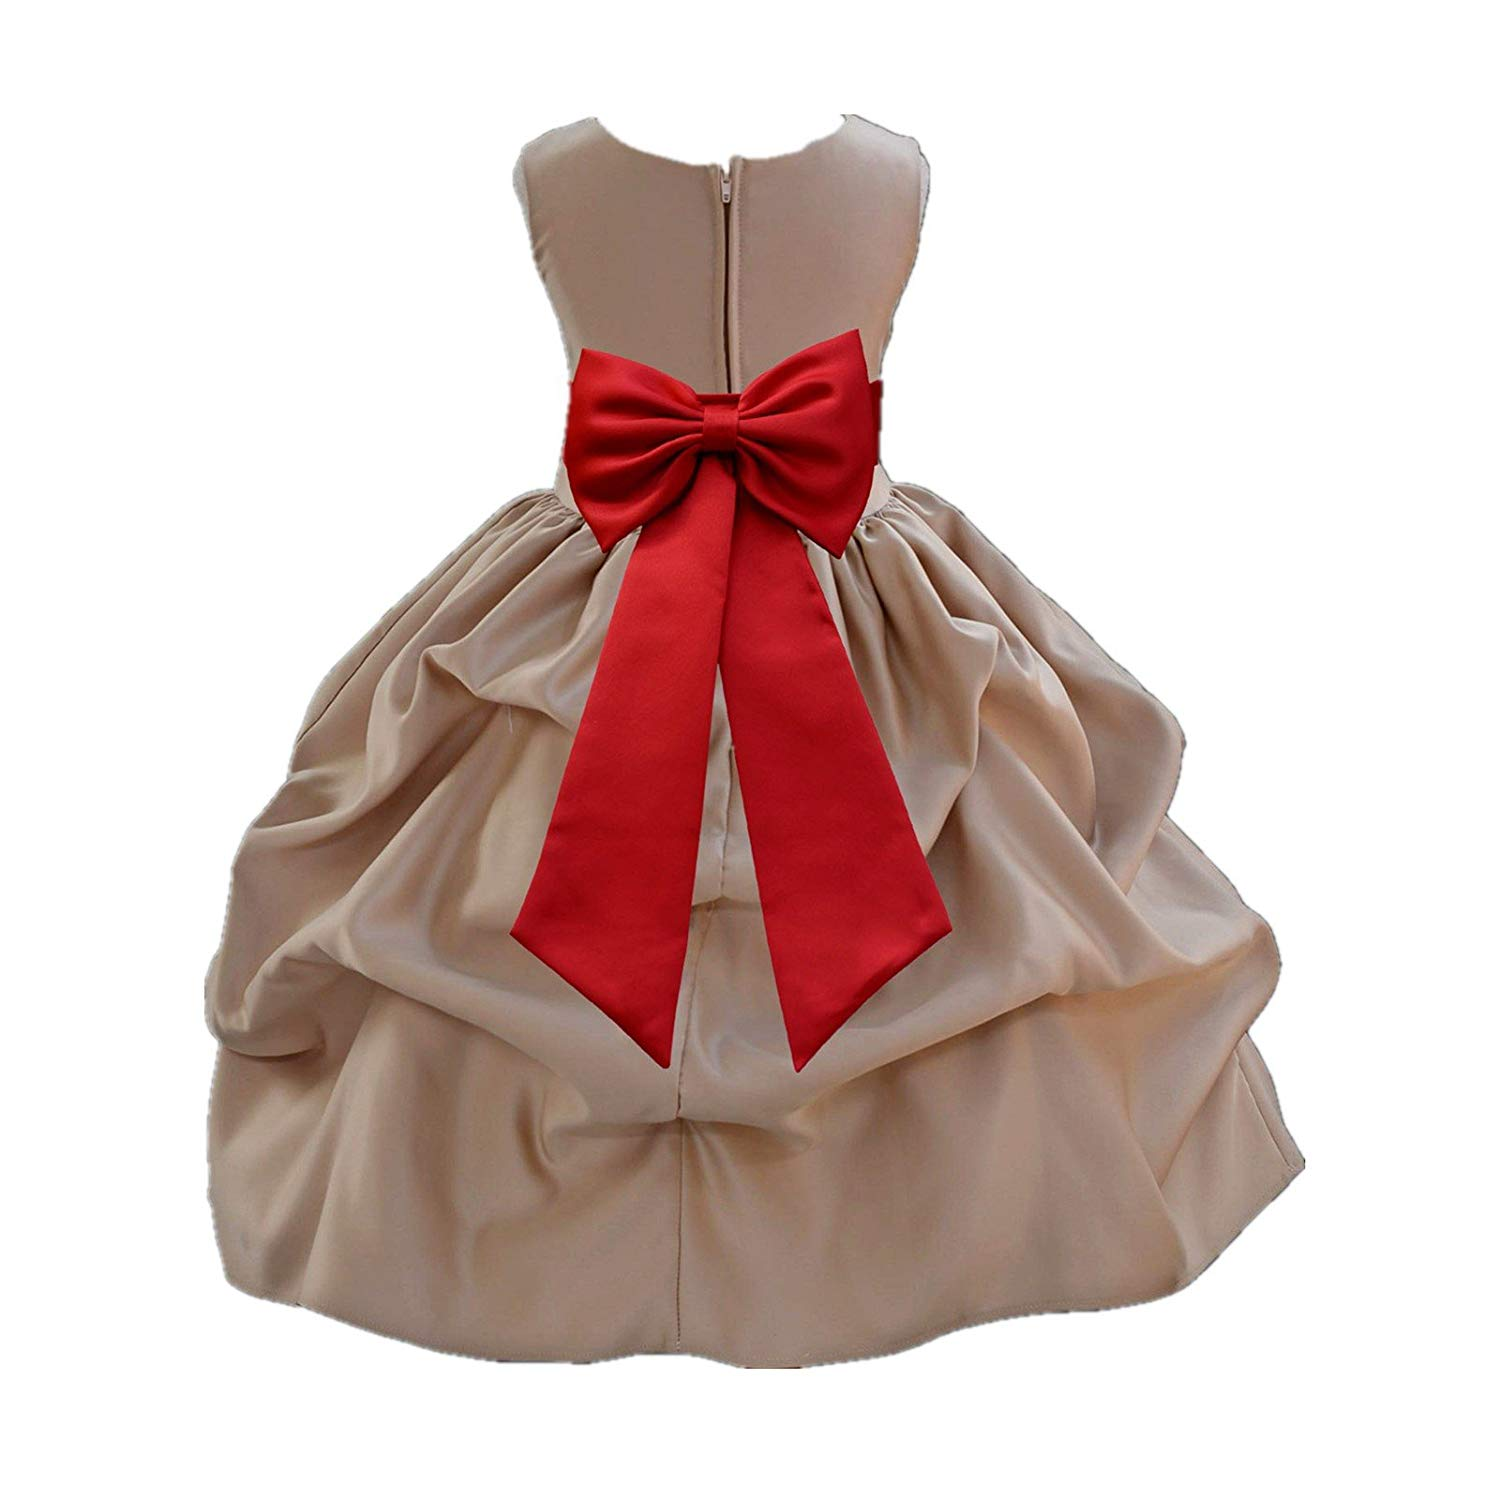 56597d8f5b3 Get Quotations · ekidsbridal Champagne Satin Bubble Pick-Up Flower Girl  Dresses Easter Summer Dresses 208T